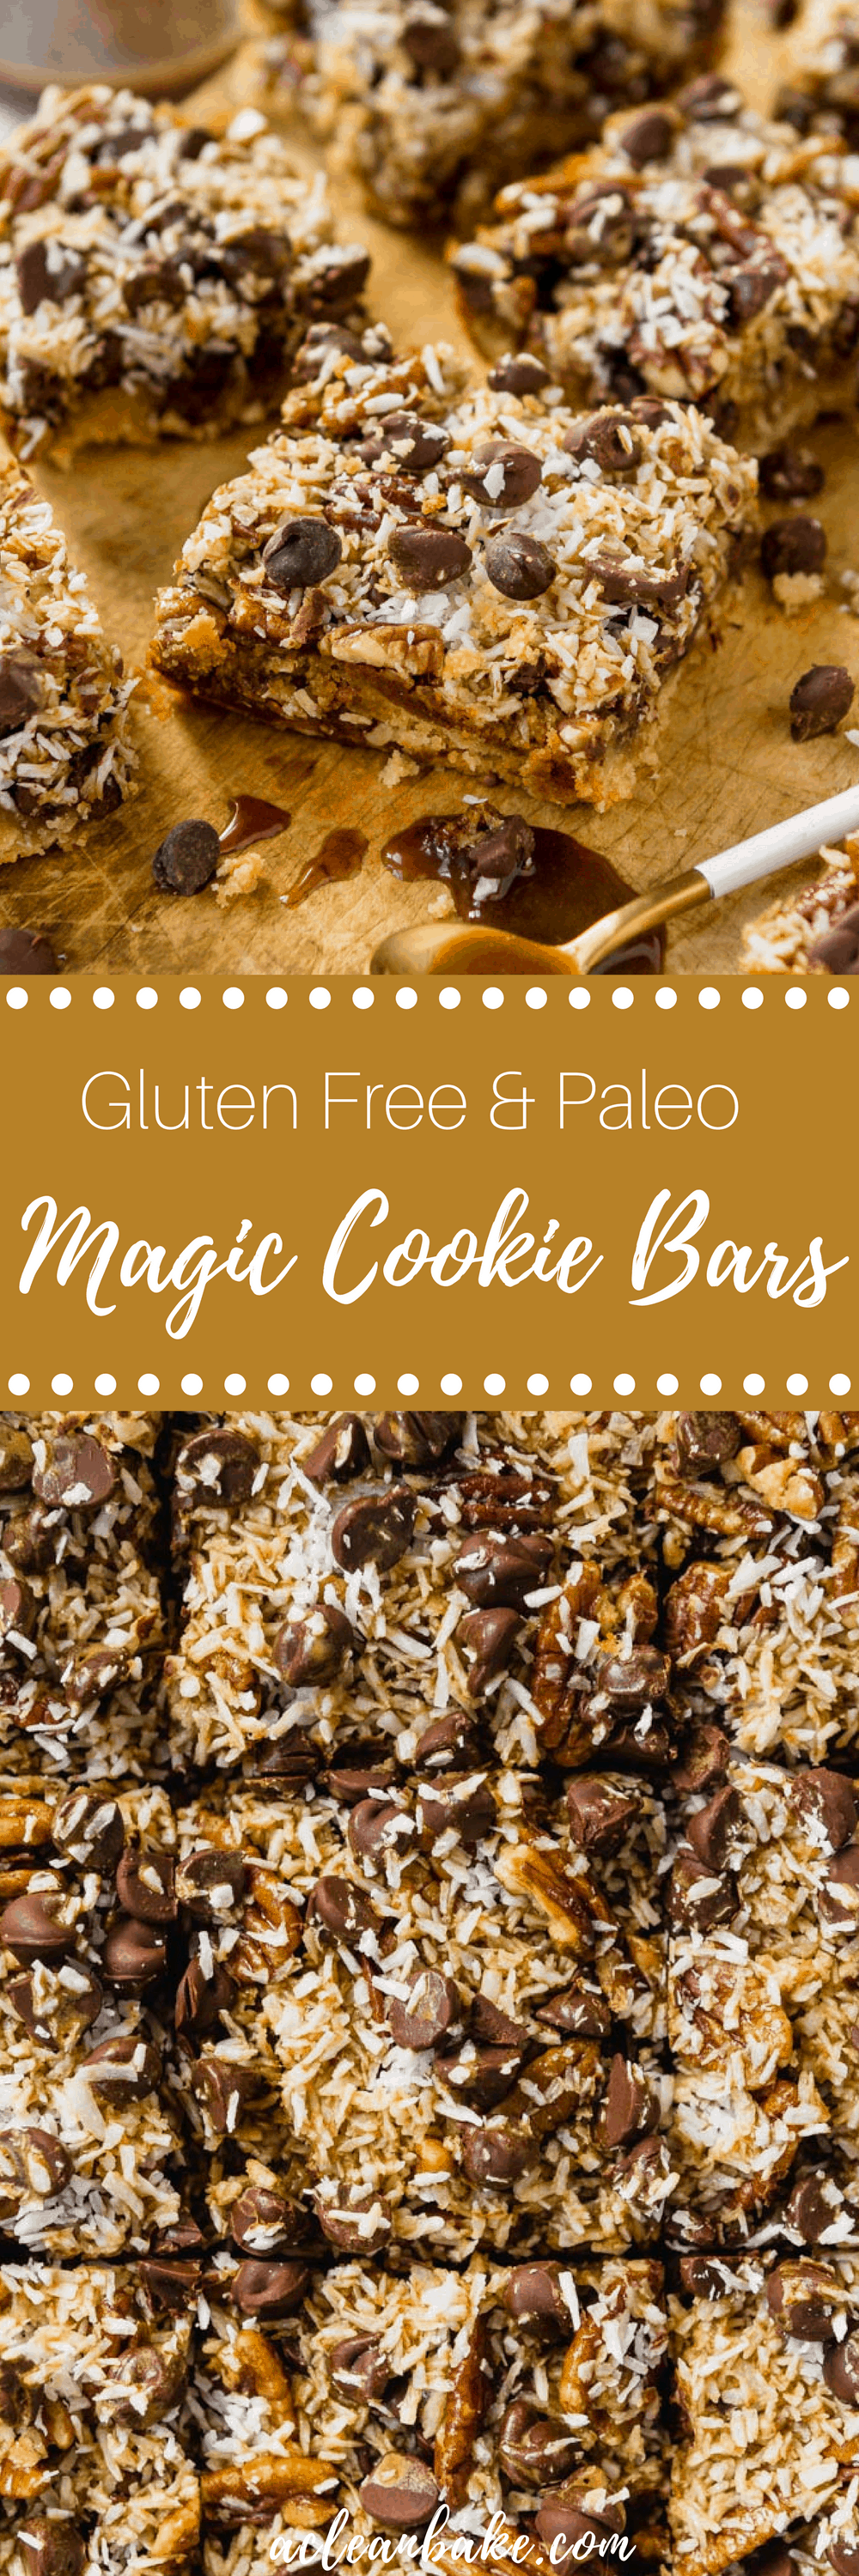 Gluten free and paleo magic cookie bars! This classic holiday cookie plate recipe has been made over to be better for you. A slightly cakey shortbread crust is topped with dark chocolate, crunchy pecans, chewy coconut and homemade dairy free and refined sugar free caramel sauce! #cookie #magiccookie #hellodolly #sevenlayer #christmas #cookieexchange #chocolate #coconut #caramel #homemade #bar